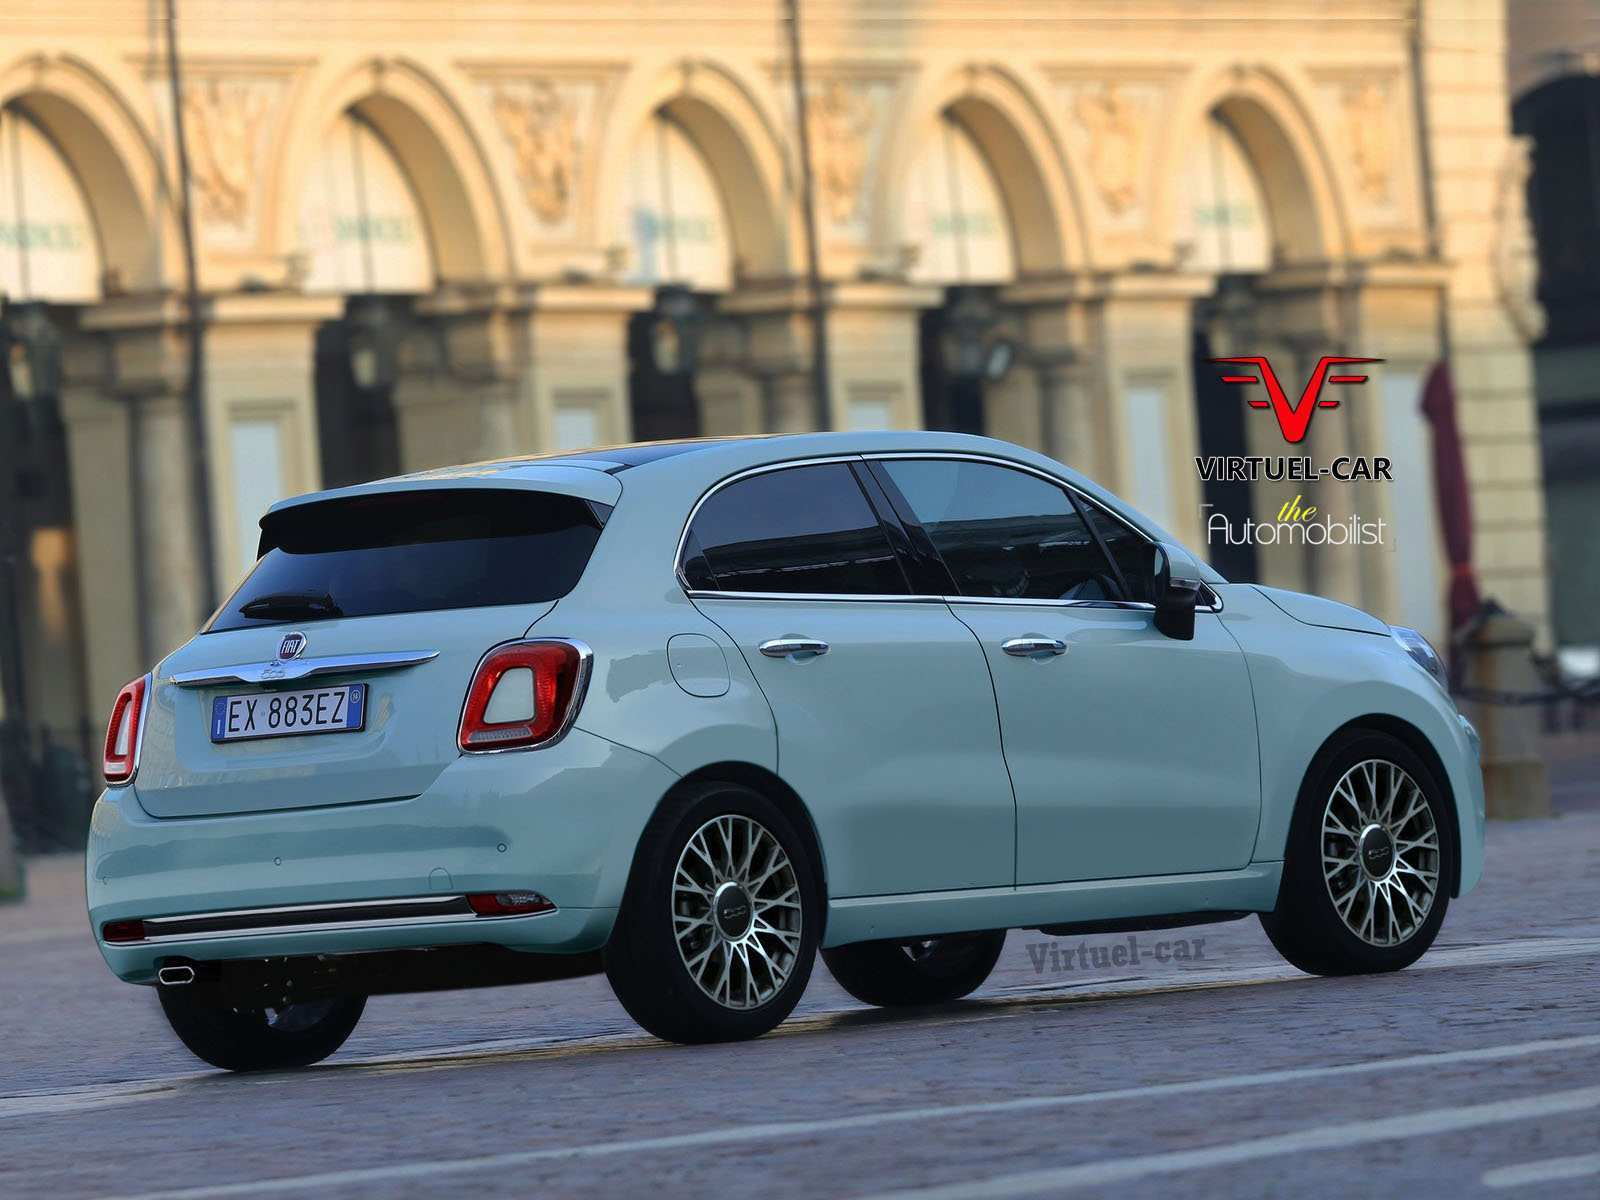 62 The Best 2020 Fiat 500L Price And Release Date